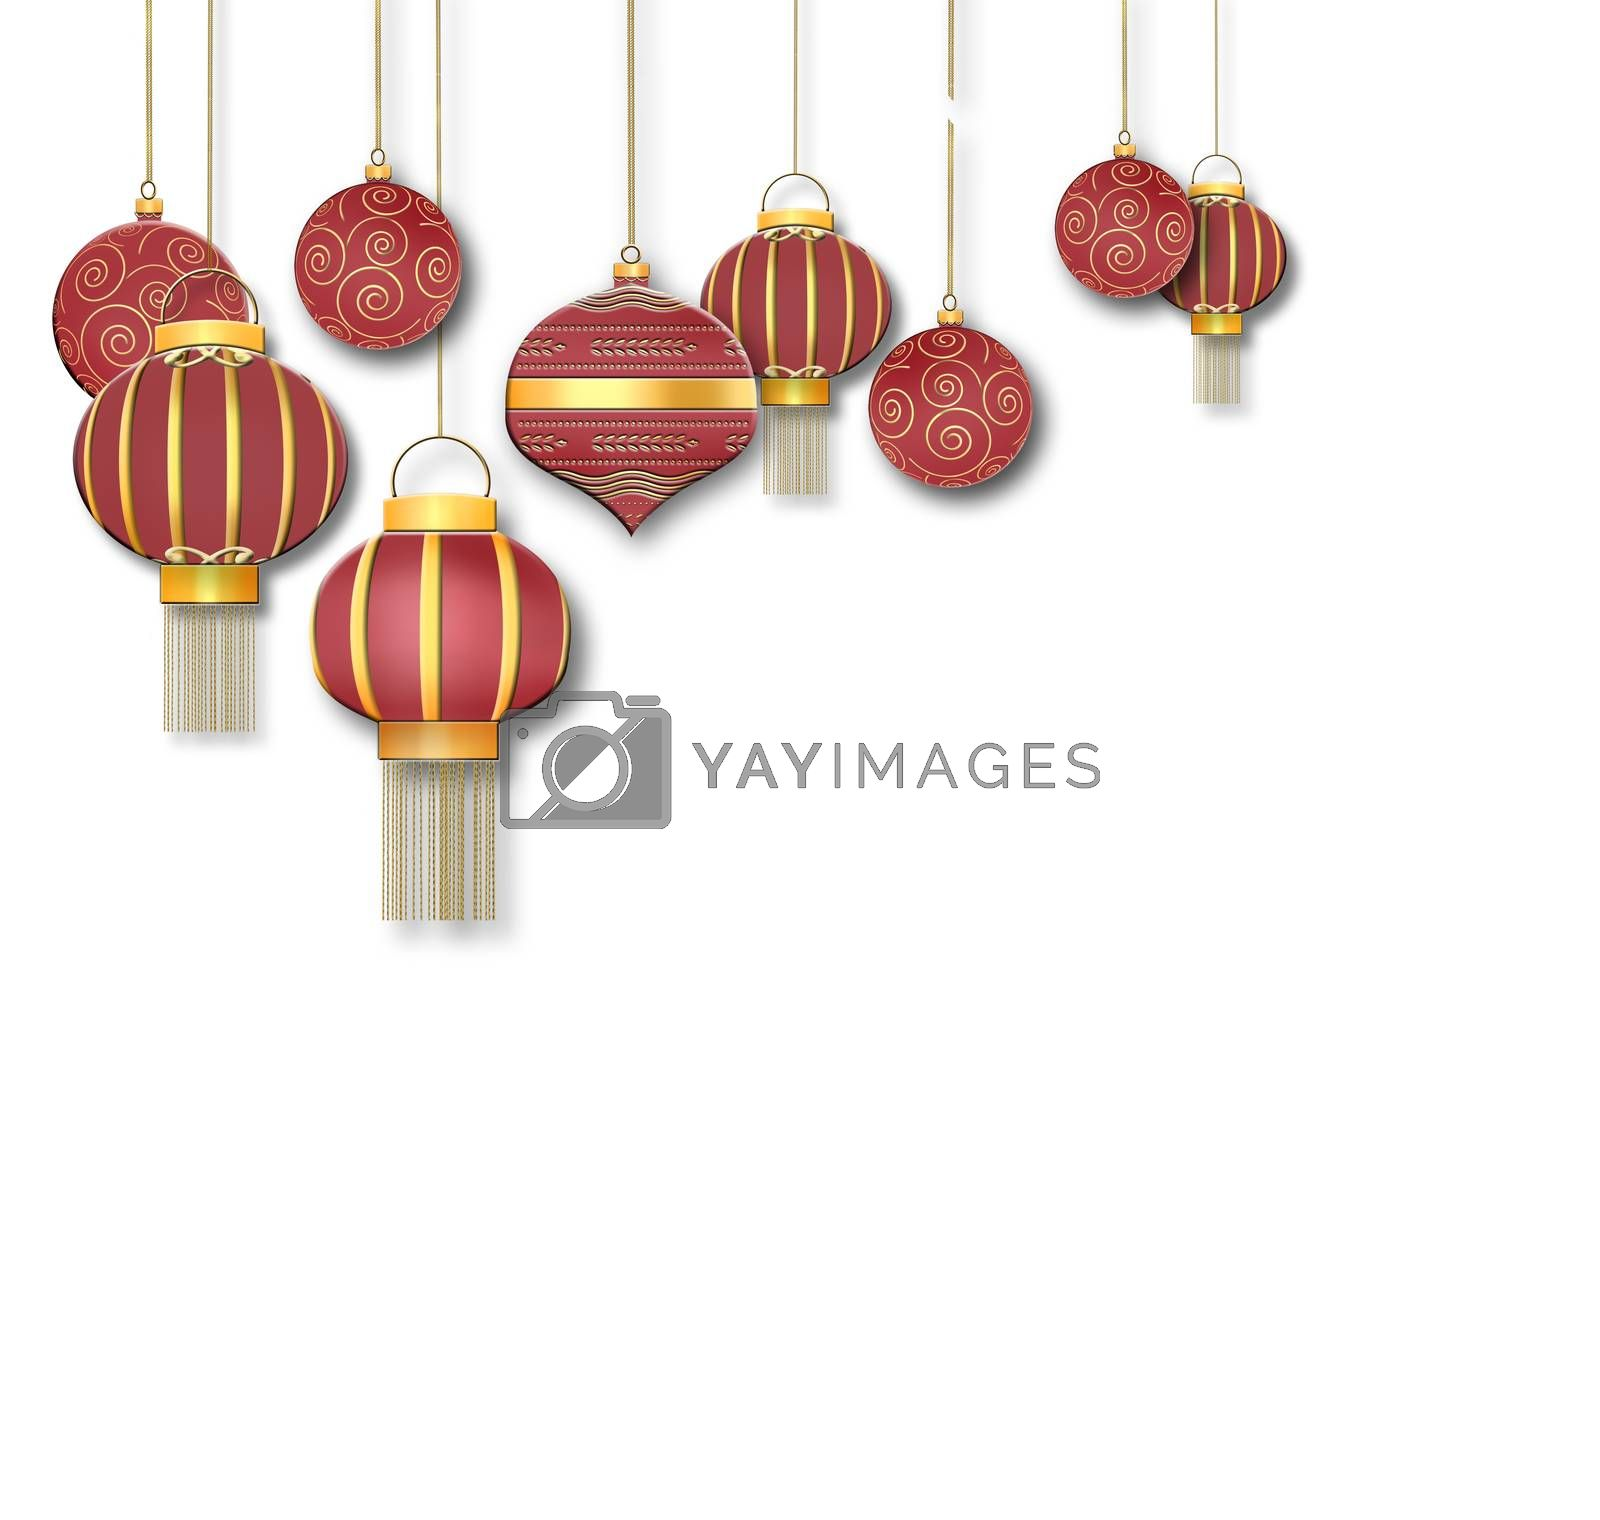 Hanging Chinese traditional lanterns and redf Christmas balls with gold ornament on white background. Place for text, copy space, mock up. 3D illustartion